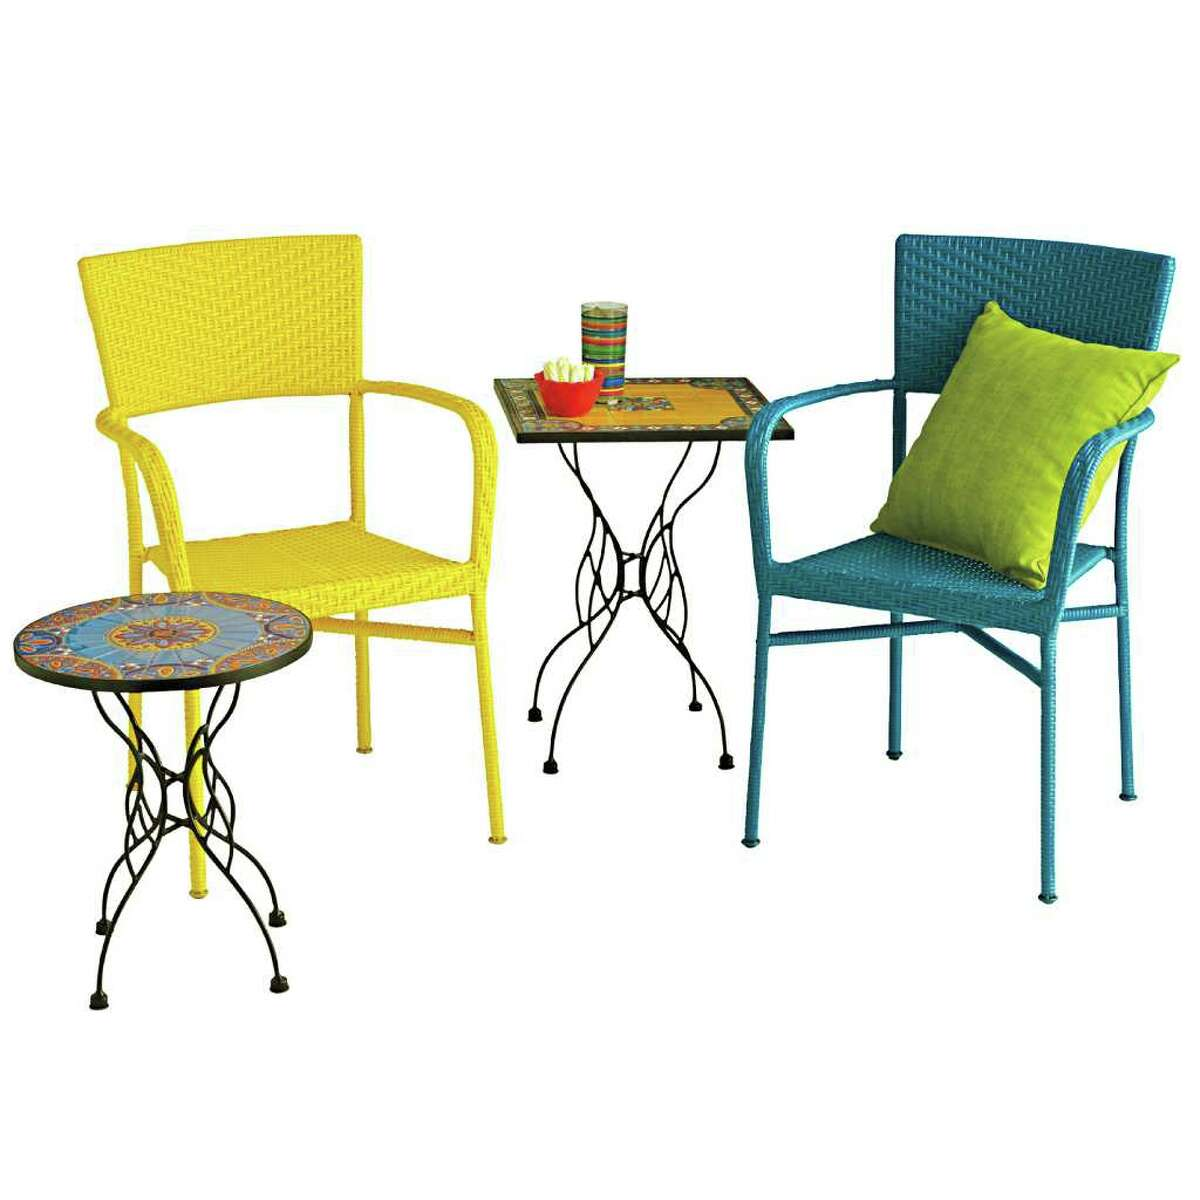 synthetic rattan yellow and blue chairs from Pier 1. $79.95. Taza round mosaic table, $89.95, Taza square mosaic table, $119.95, Pier 1.